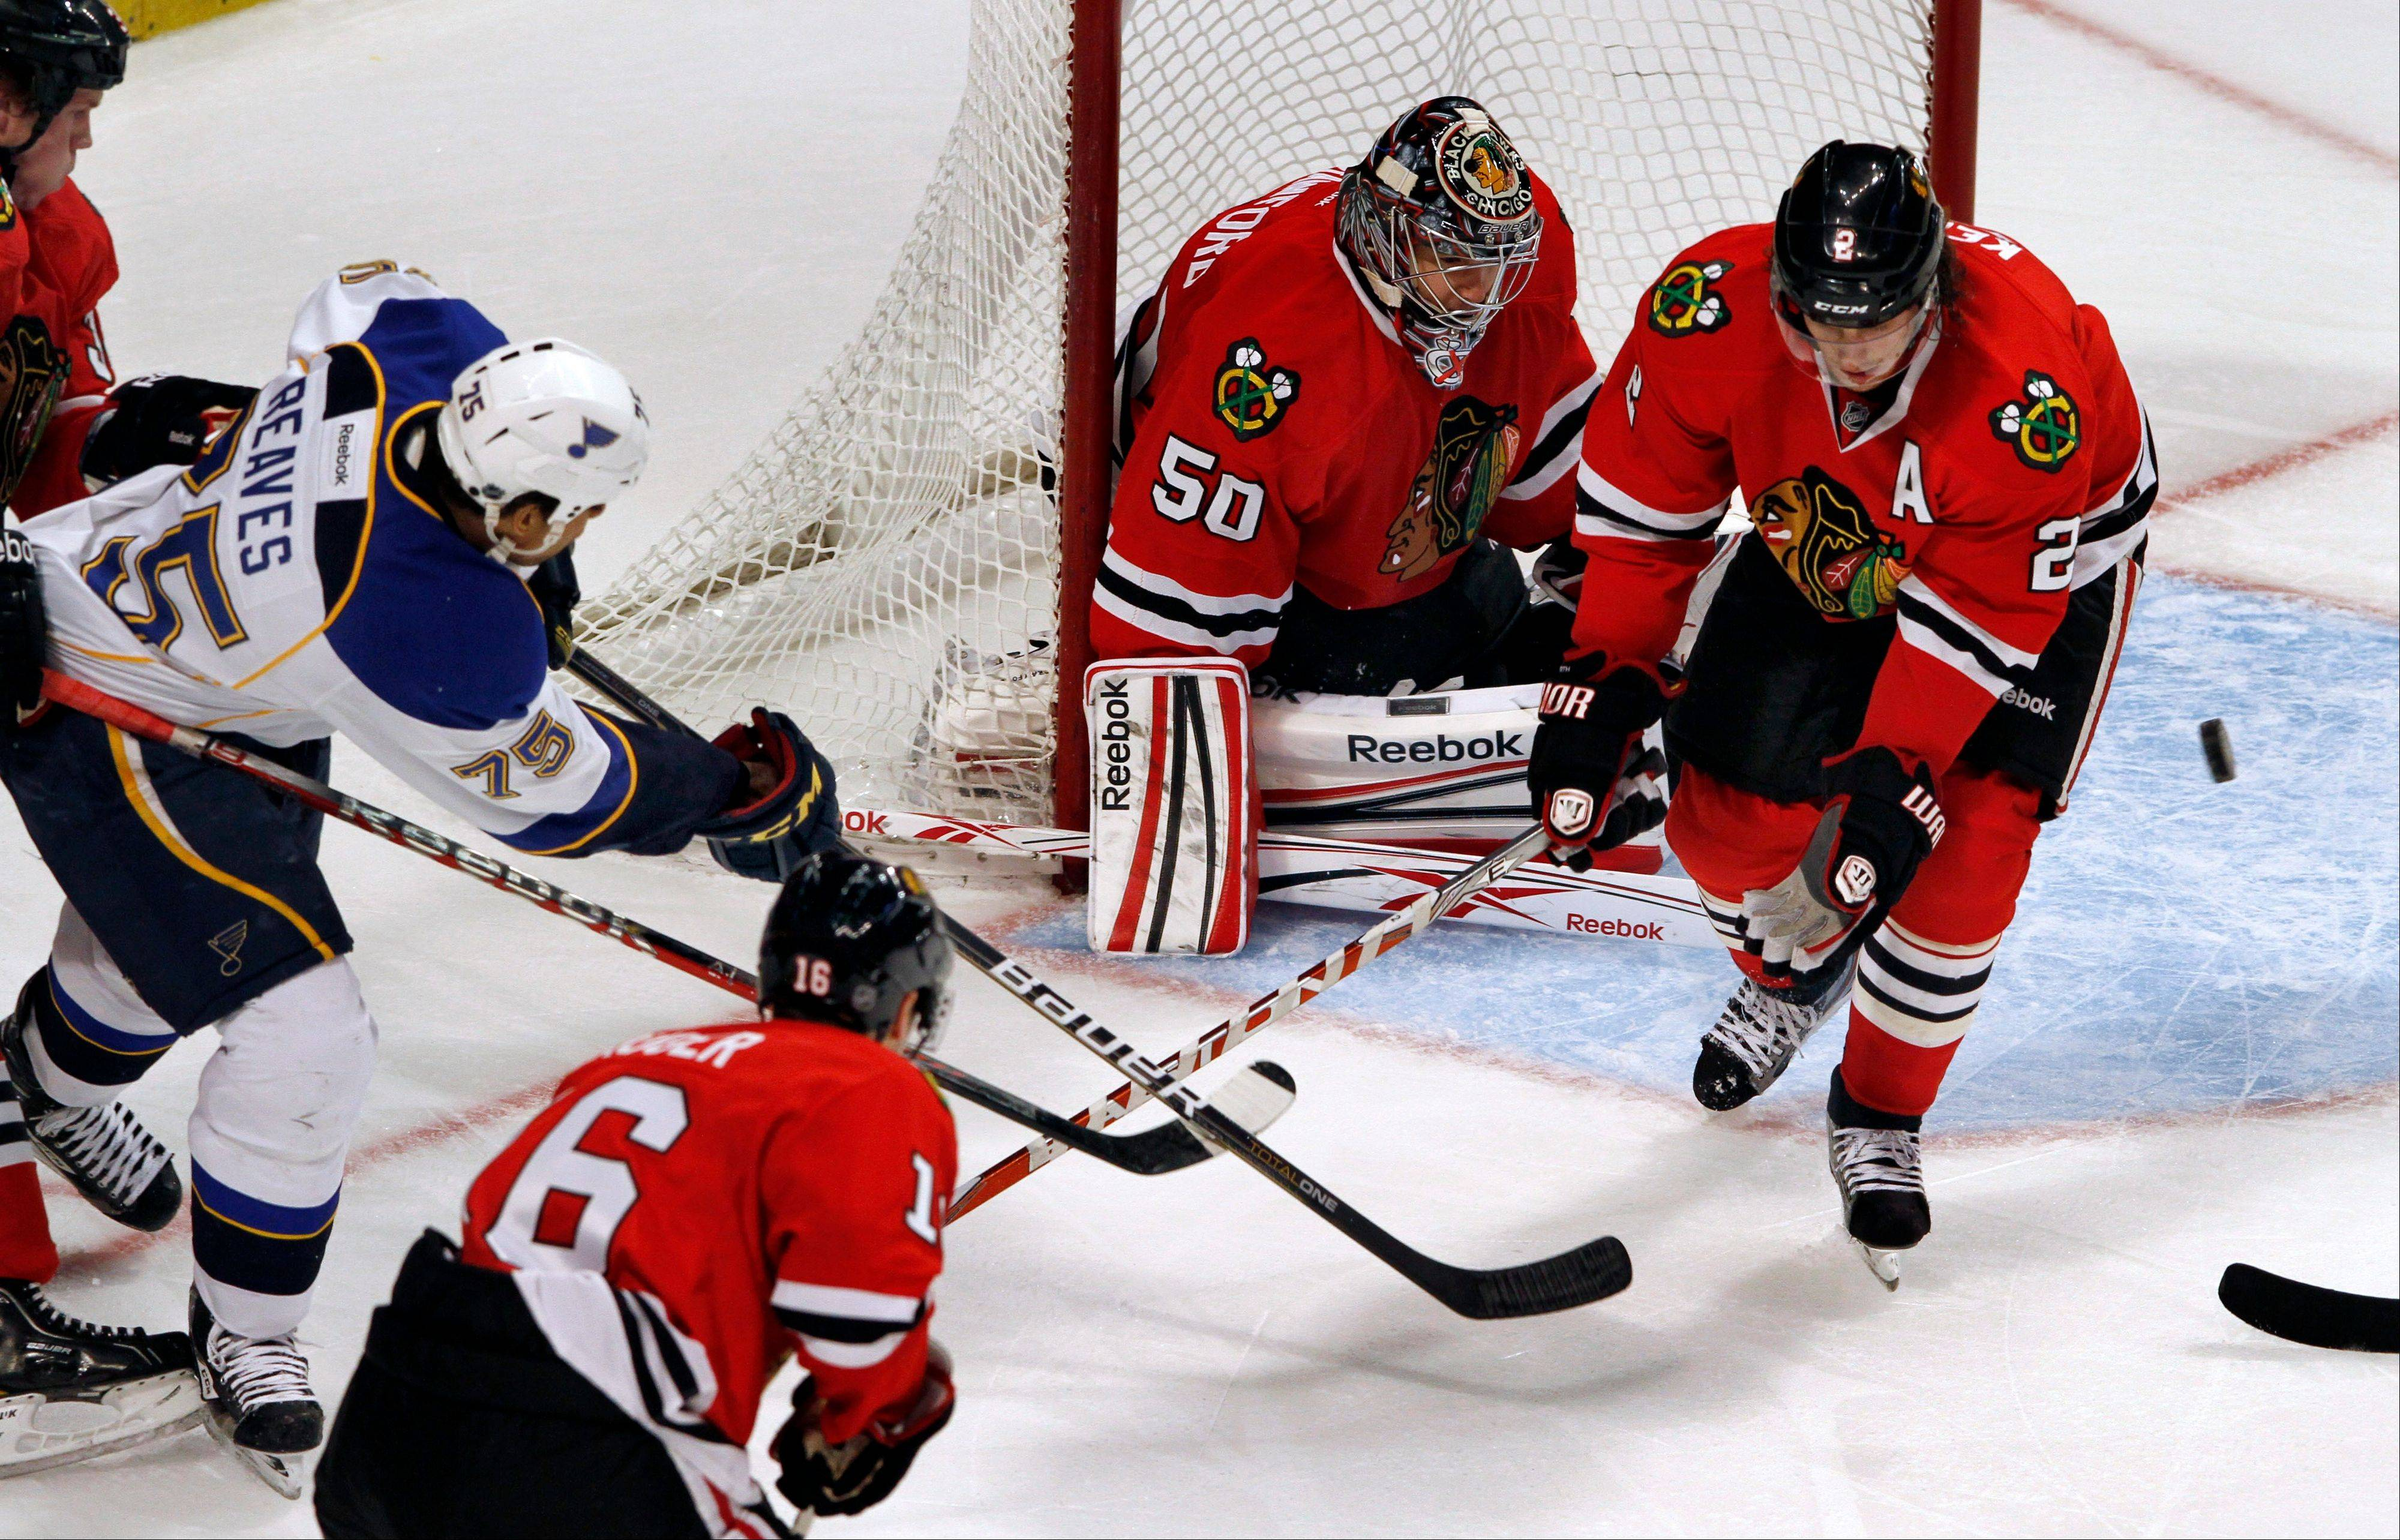 While the Hawks continue to struggle with the power play, the defense has improved. The Hawks and goalie Corey Crawford have allowed only 7 goals in the last four games.